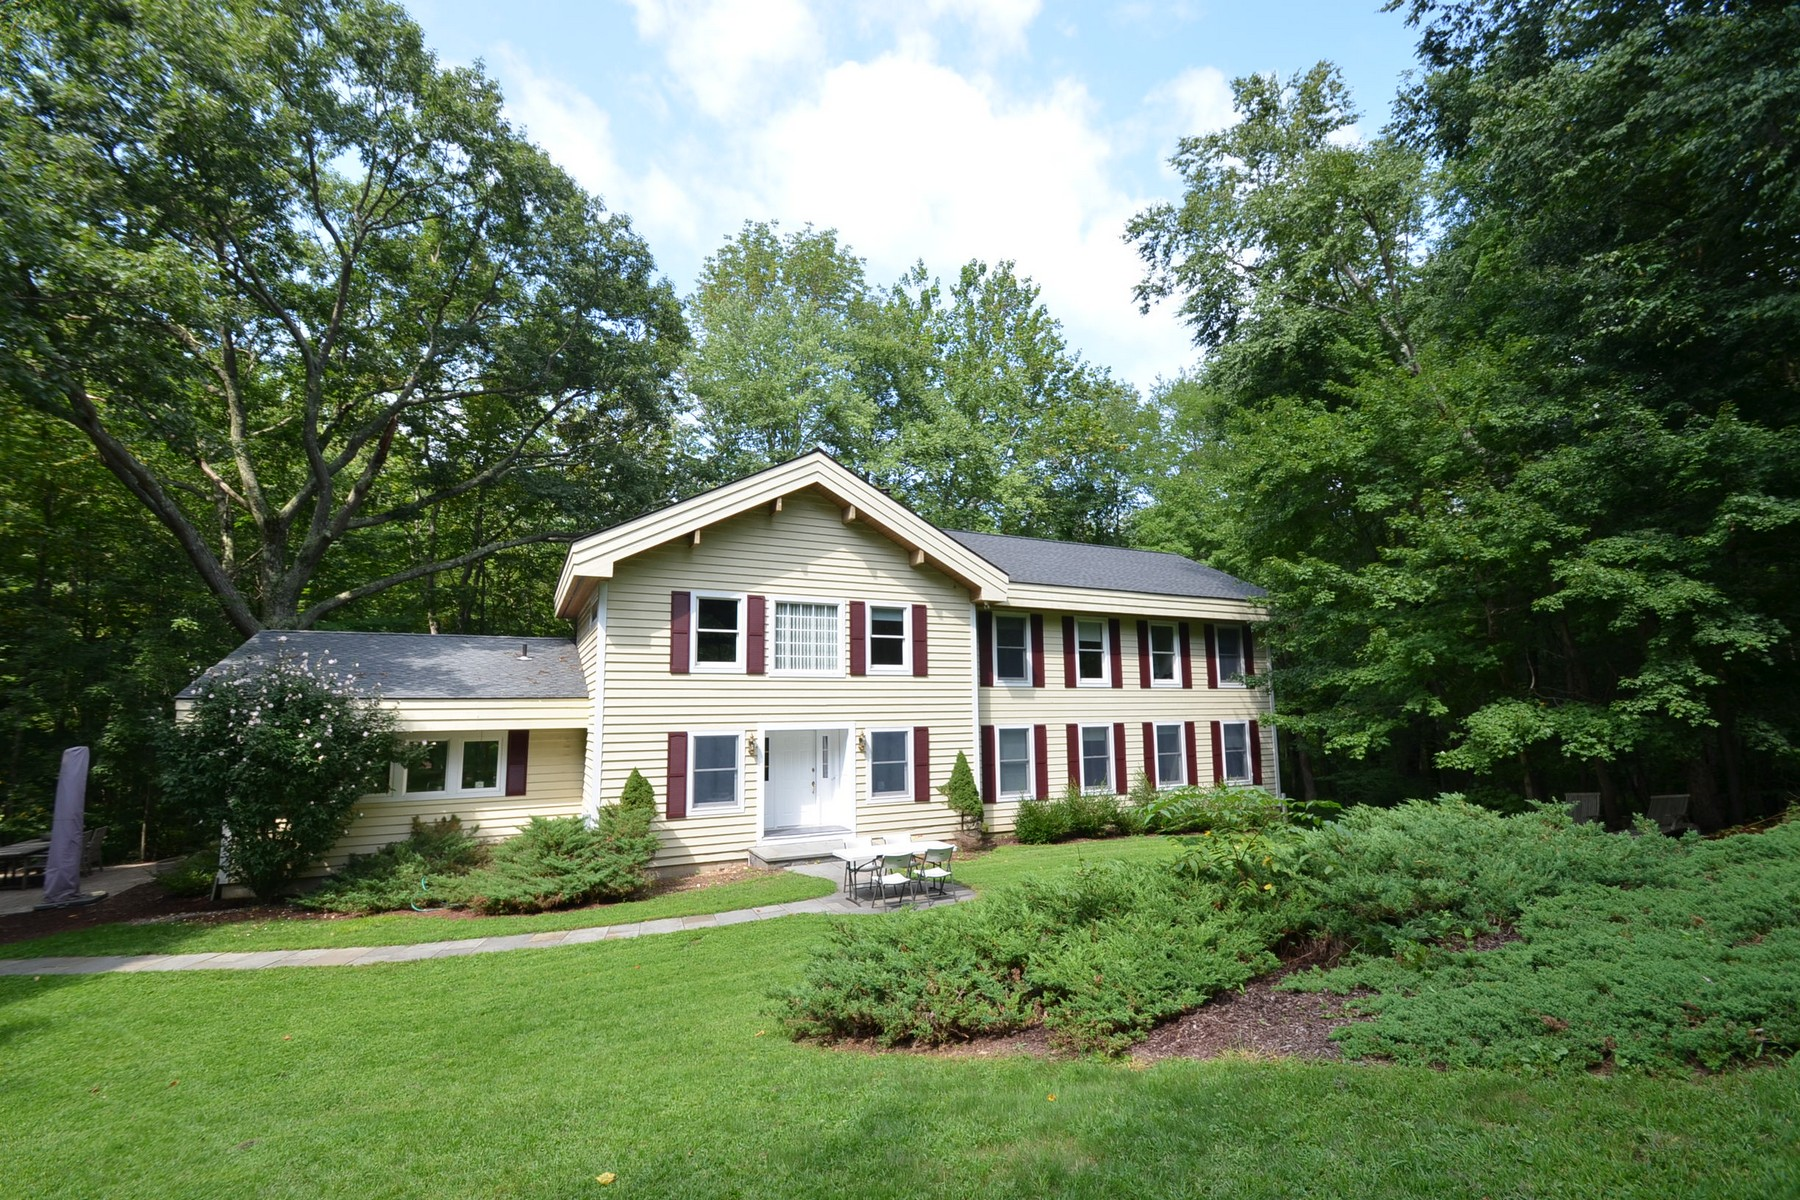 Property For Sale at Nature Lover's Paradise: Post and Beam Home on 4 Acres in Greenfield Hill